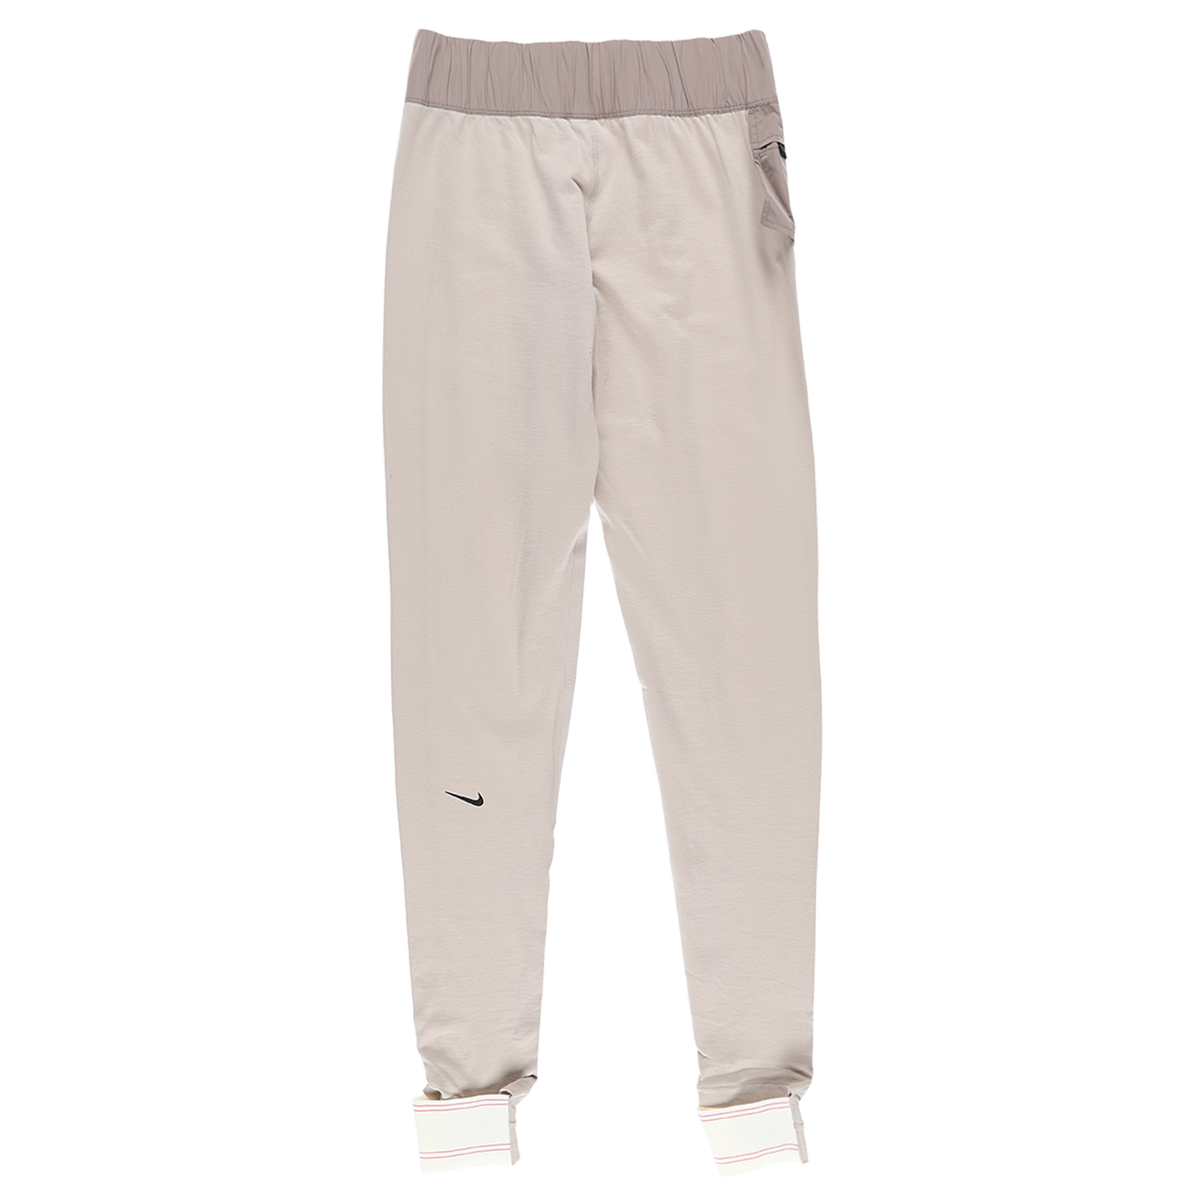 Nike Women's A.A.E. 3.0 Leggings  - XHIBITION